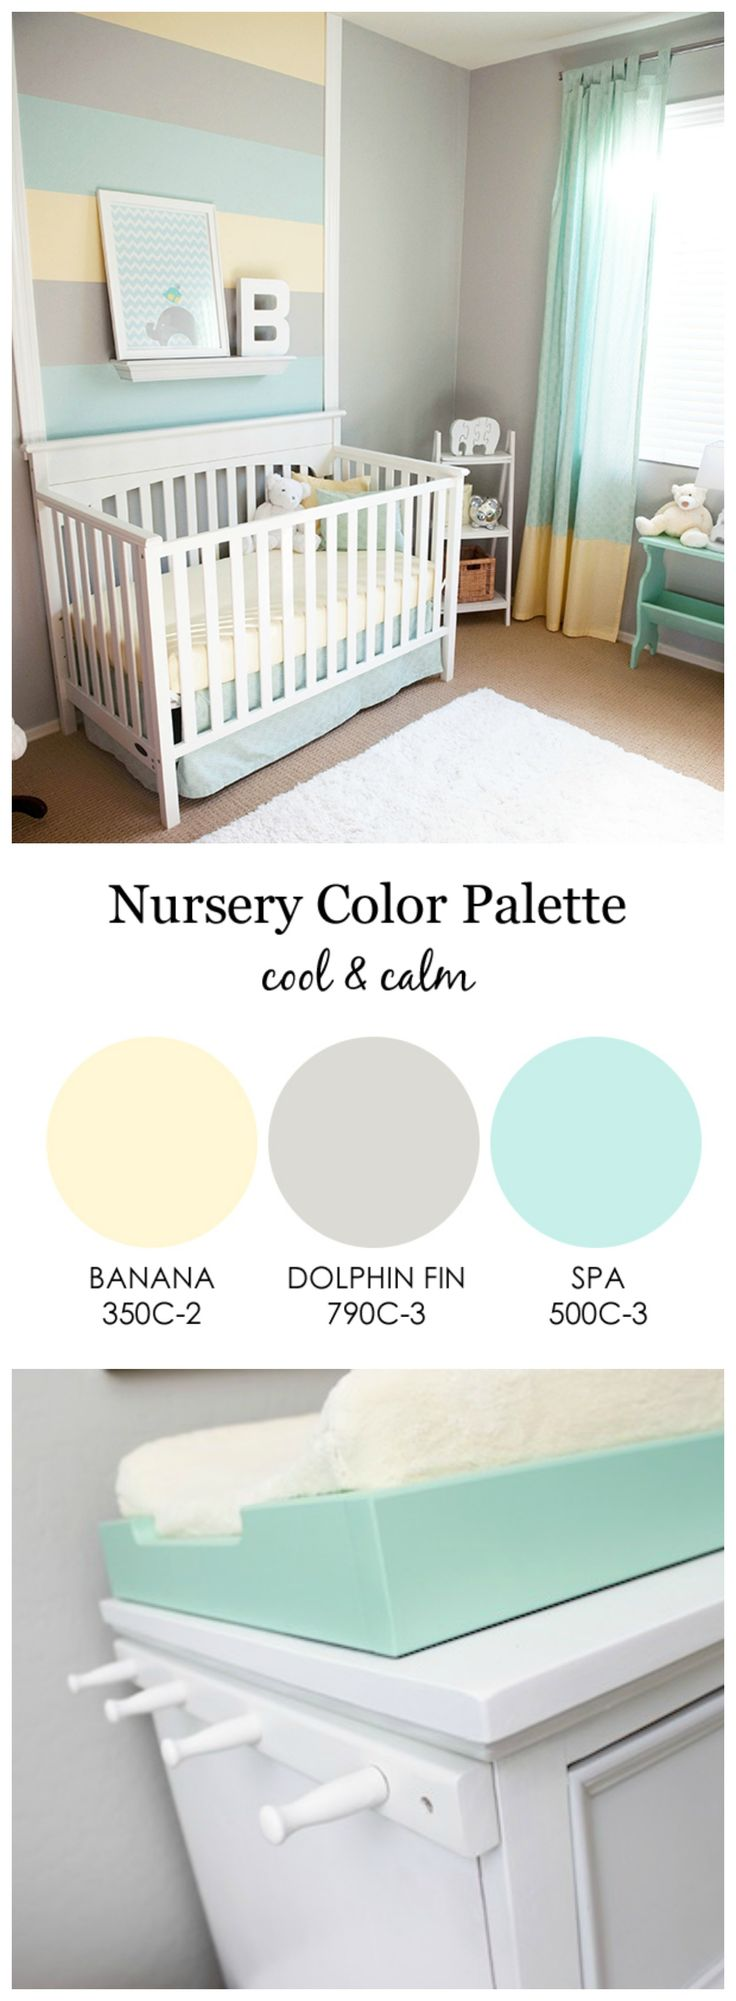 Gender Neutral Color Palette Prepossessing Best 25 Gender Neutral Nurseries Ideas On Pinterest  Baby Room . Inspiration